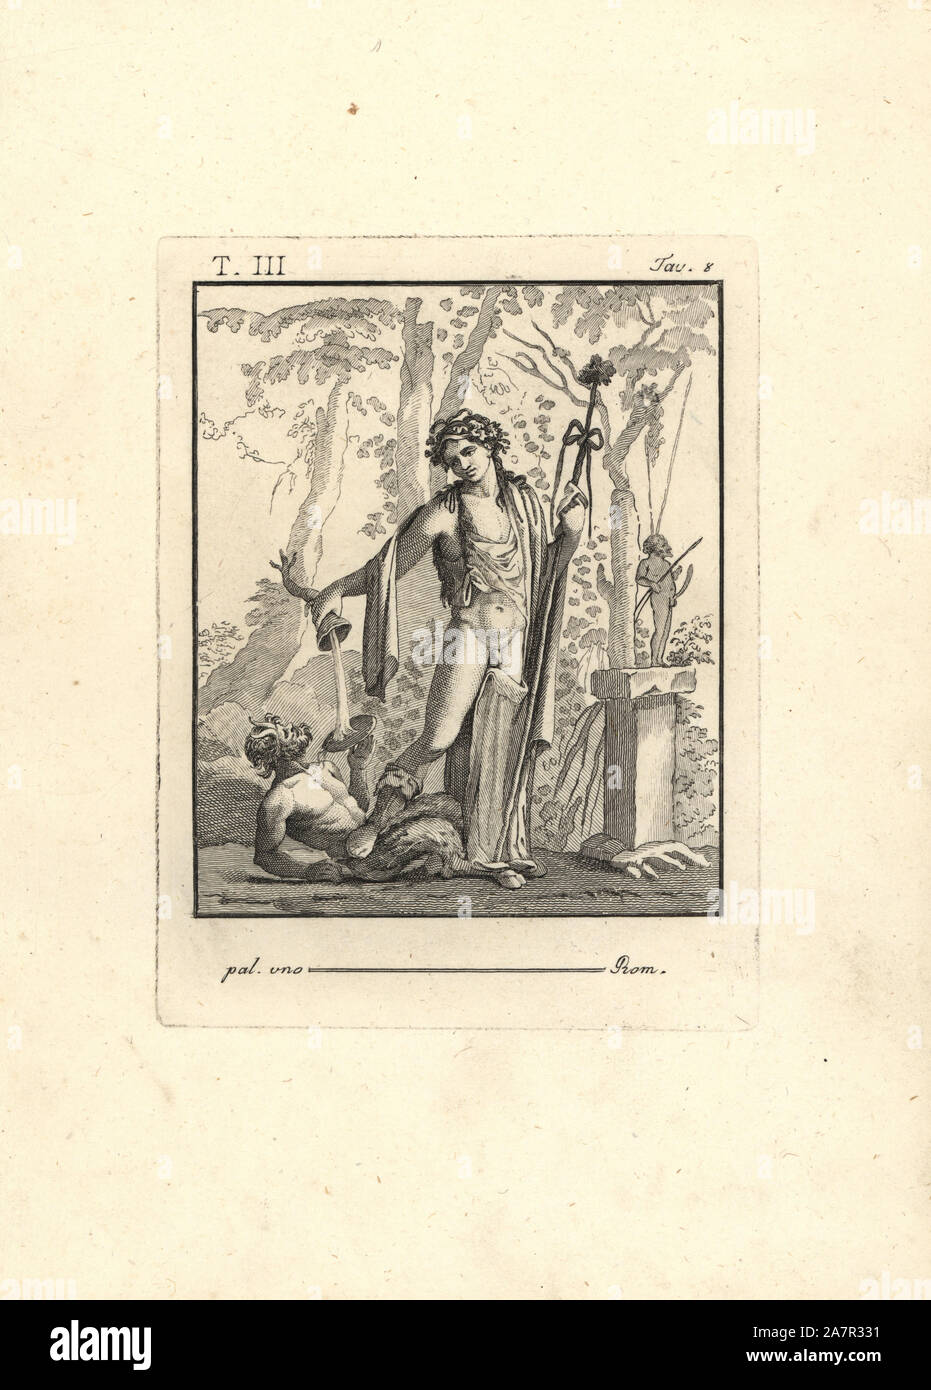 Bacchus with thyrsus, tripod horn and crown of leaves standing in a forest. He stands on a drunken satyr in front of a statue of Priapus. Copperplate engraving by Tommaso Piroli from his Antiquities of Herculaneum (Antichita di Ercolano), Rome, 1790. Stock Photo